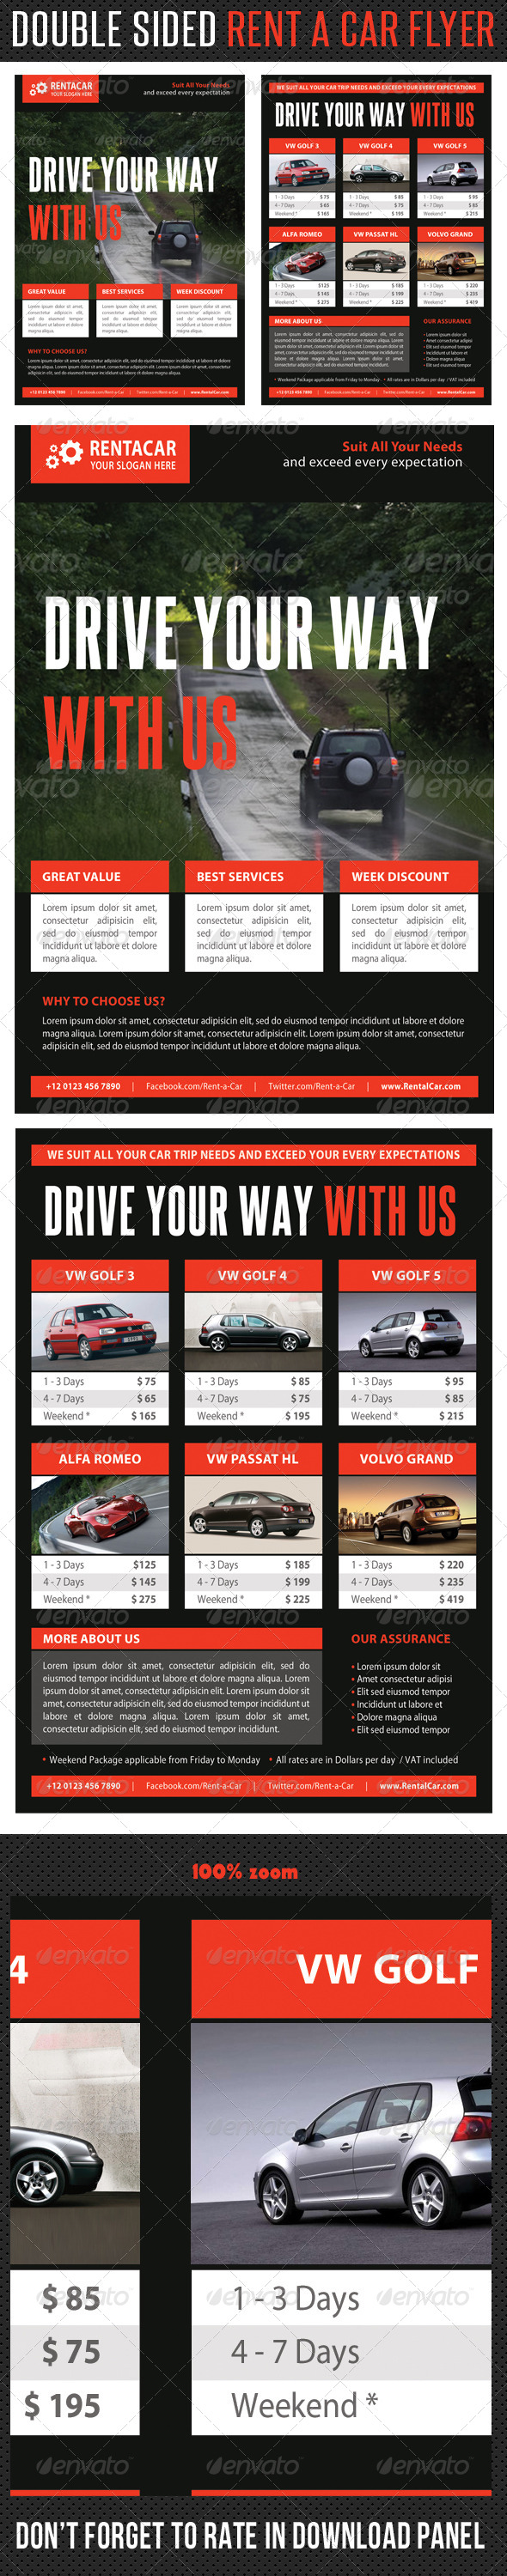 Rent A Car Corporate Flyer 09 - Corporate Flyers